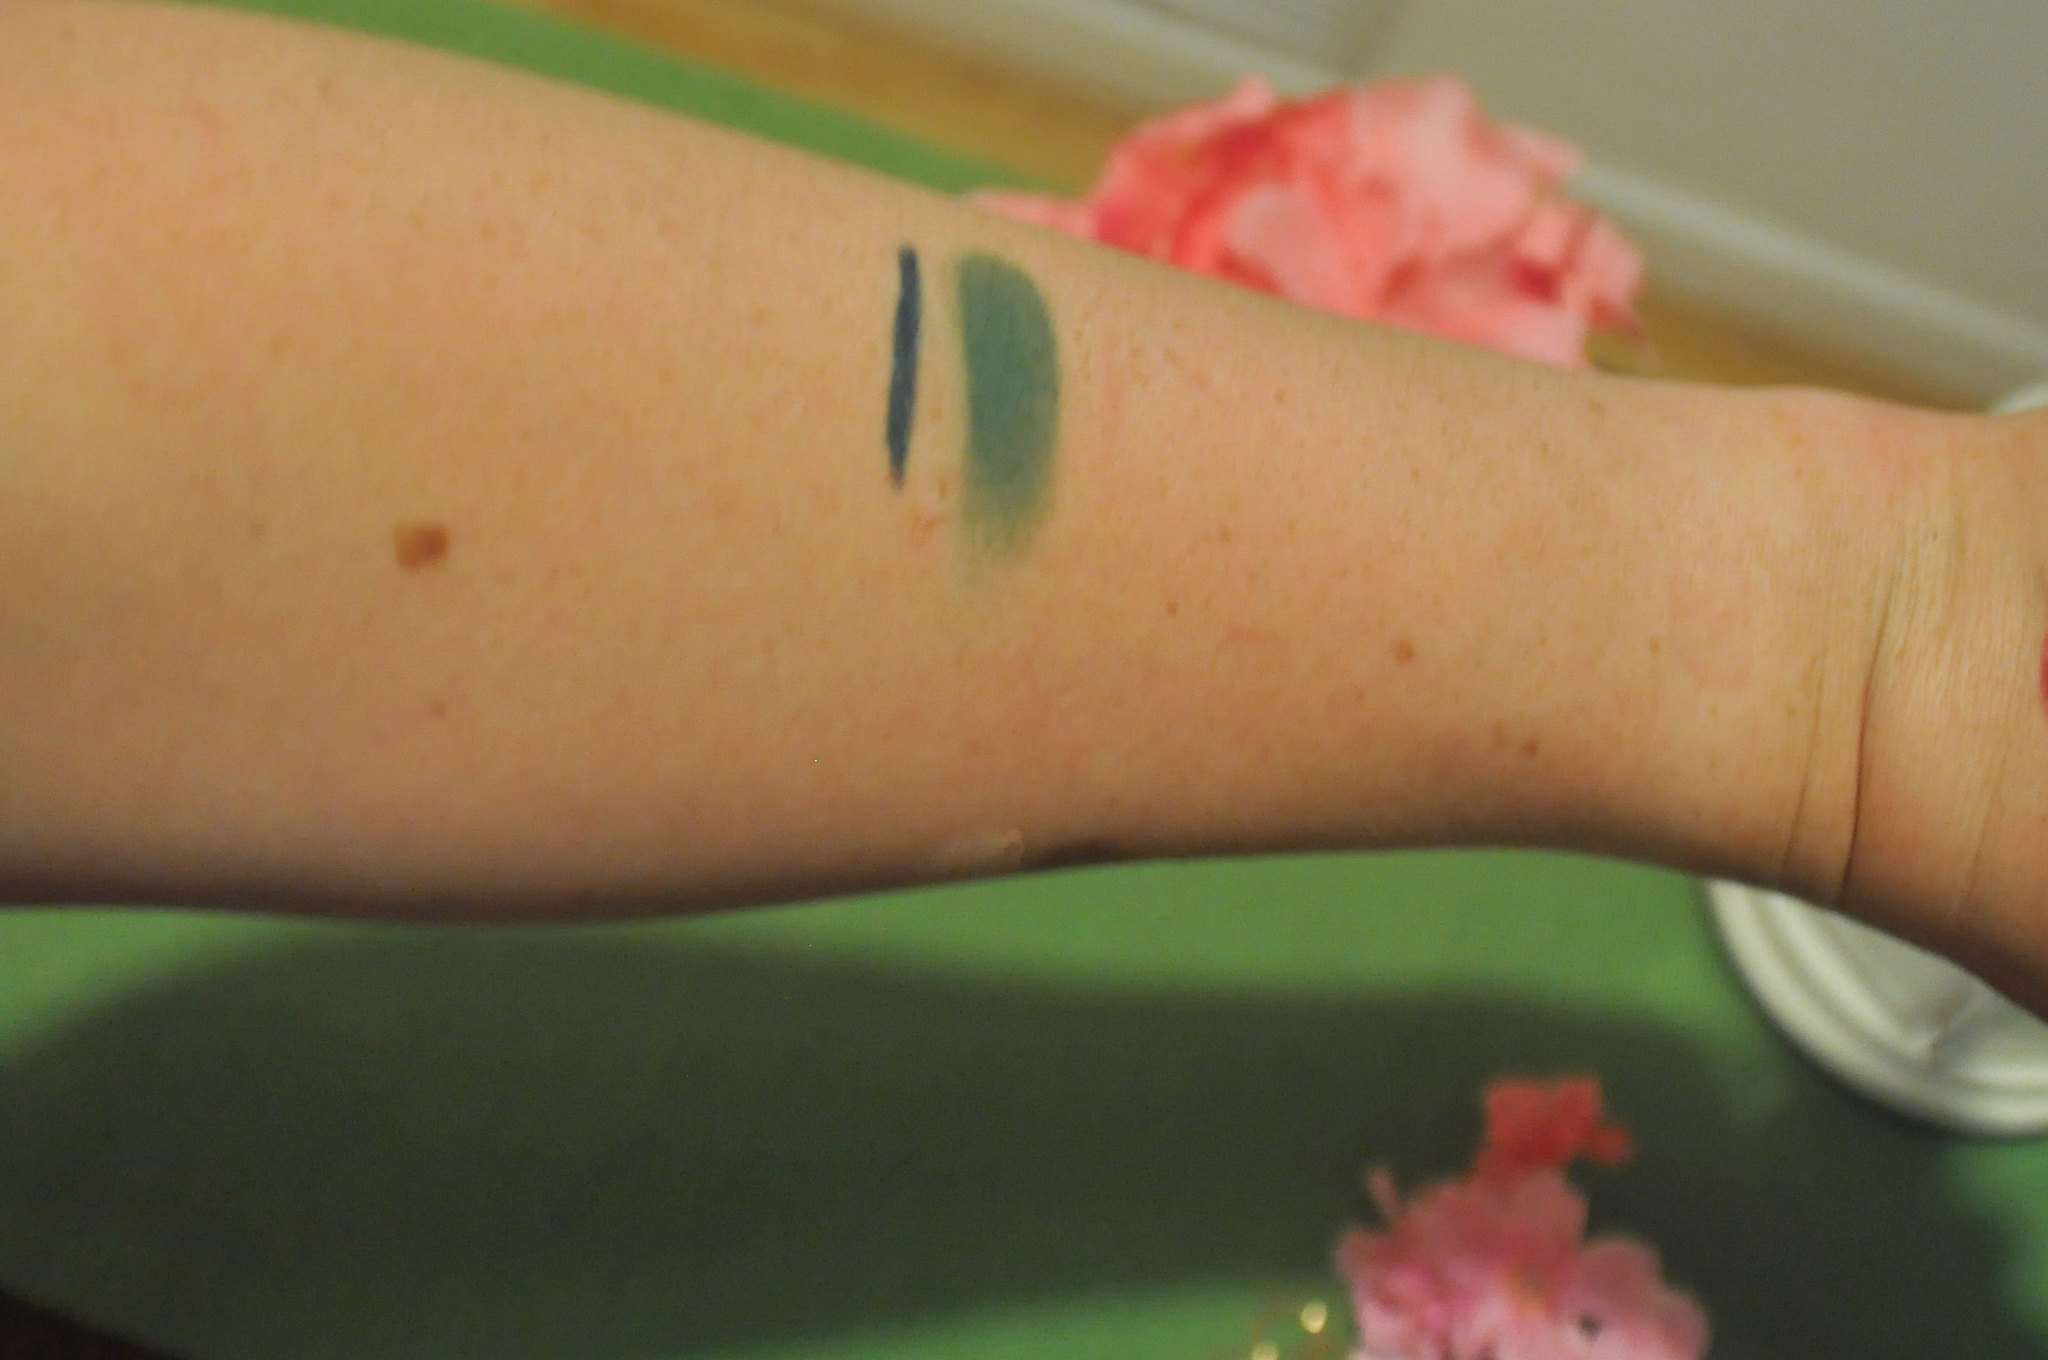 NYX Kush Eyeshadow and Tropical Green Extreme Shine Eye Liner Review and Swatches